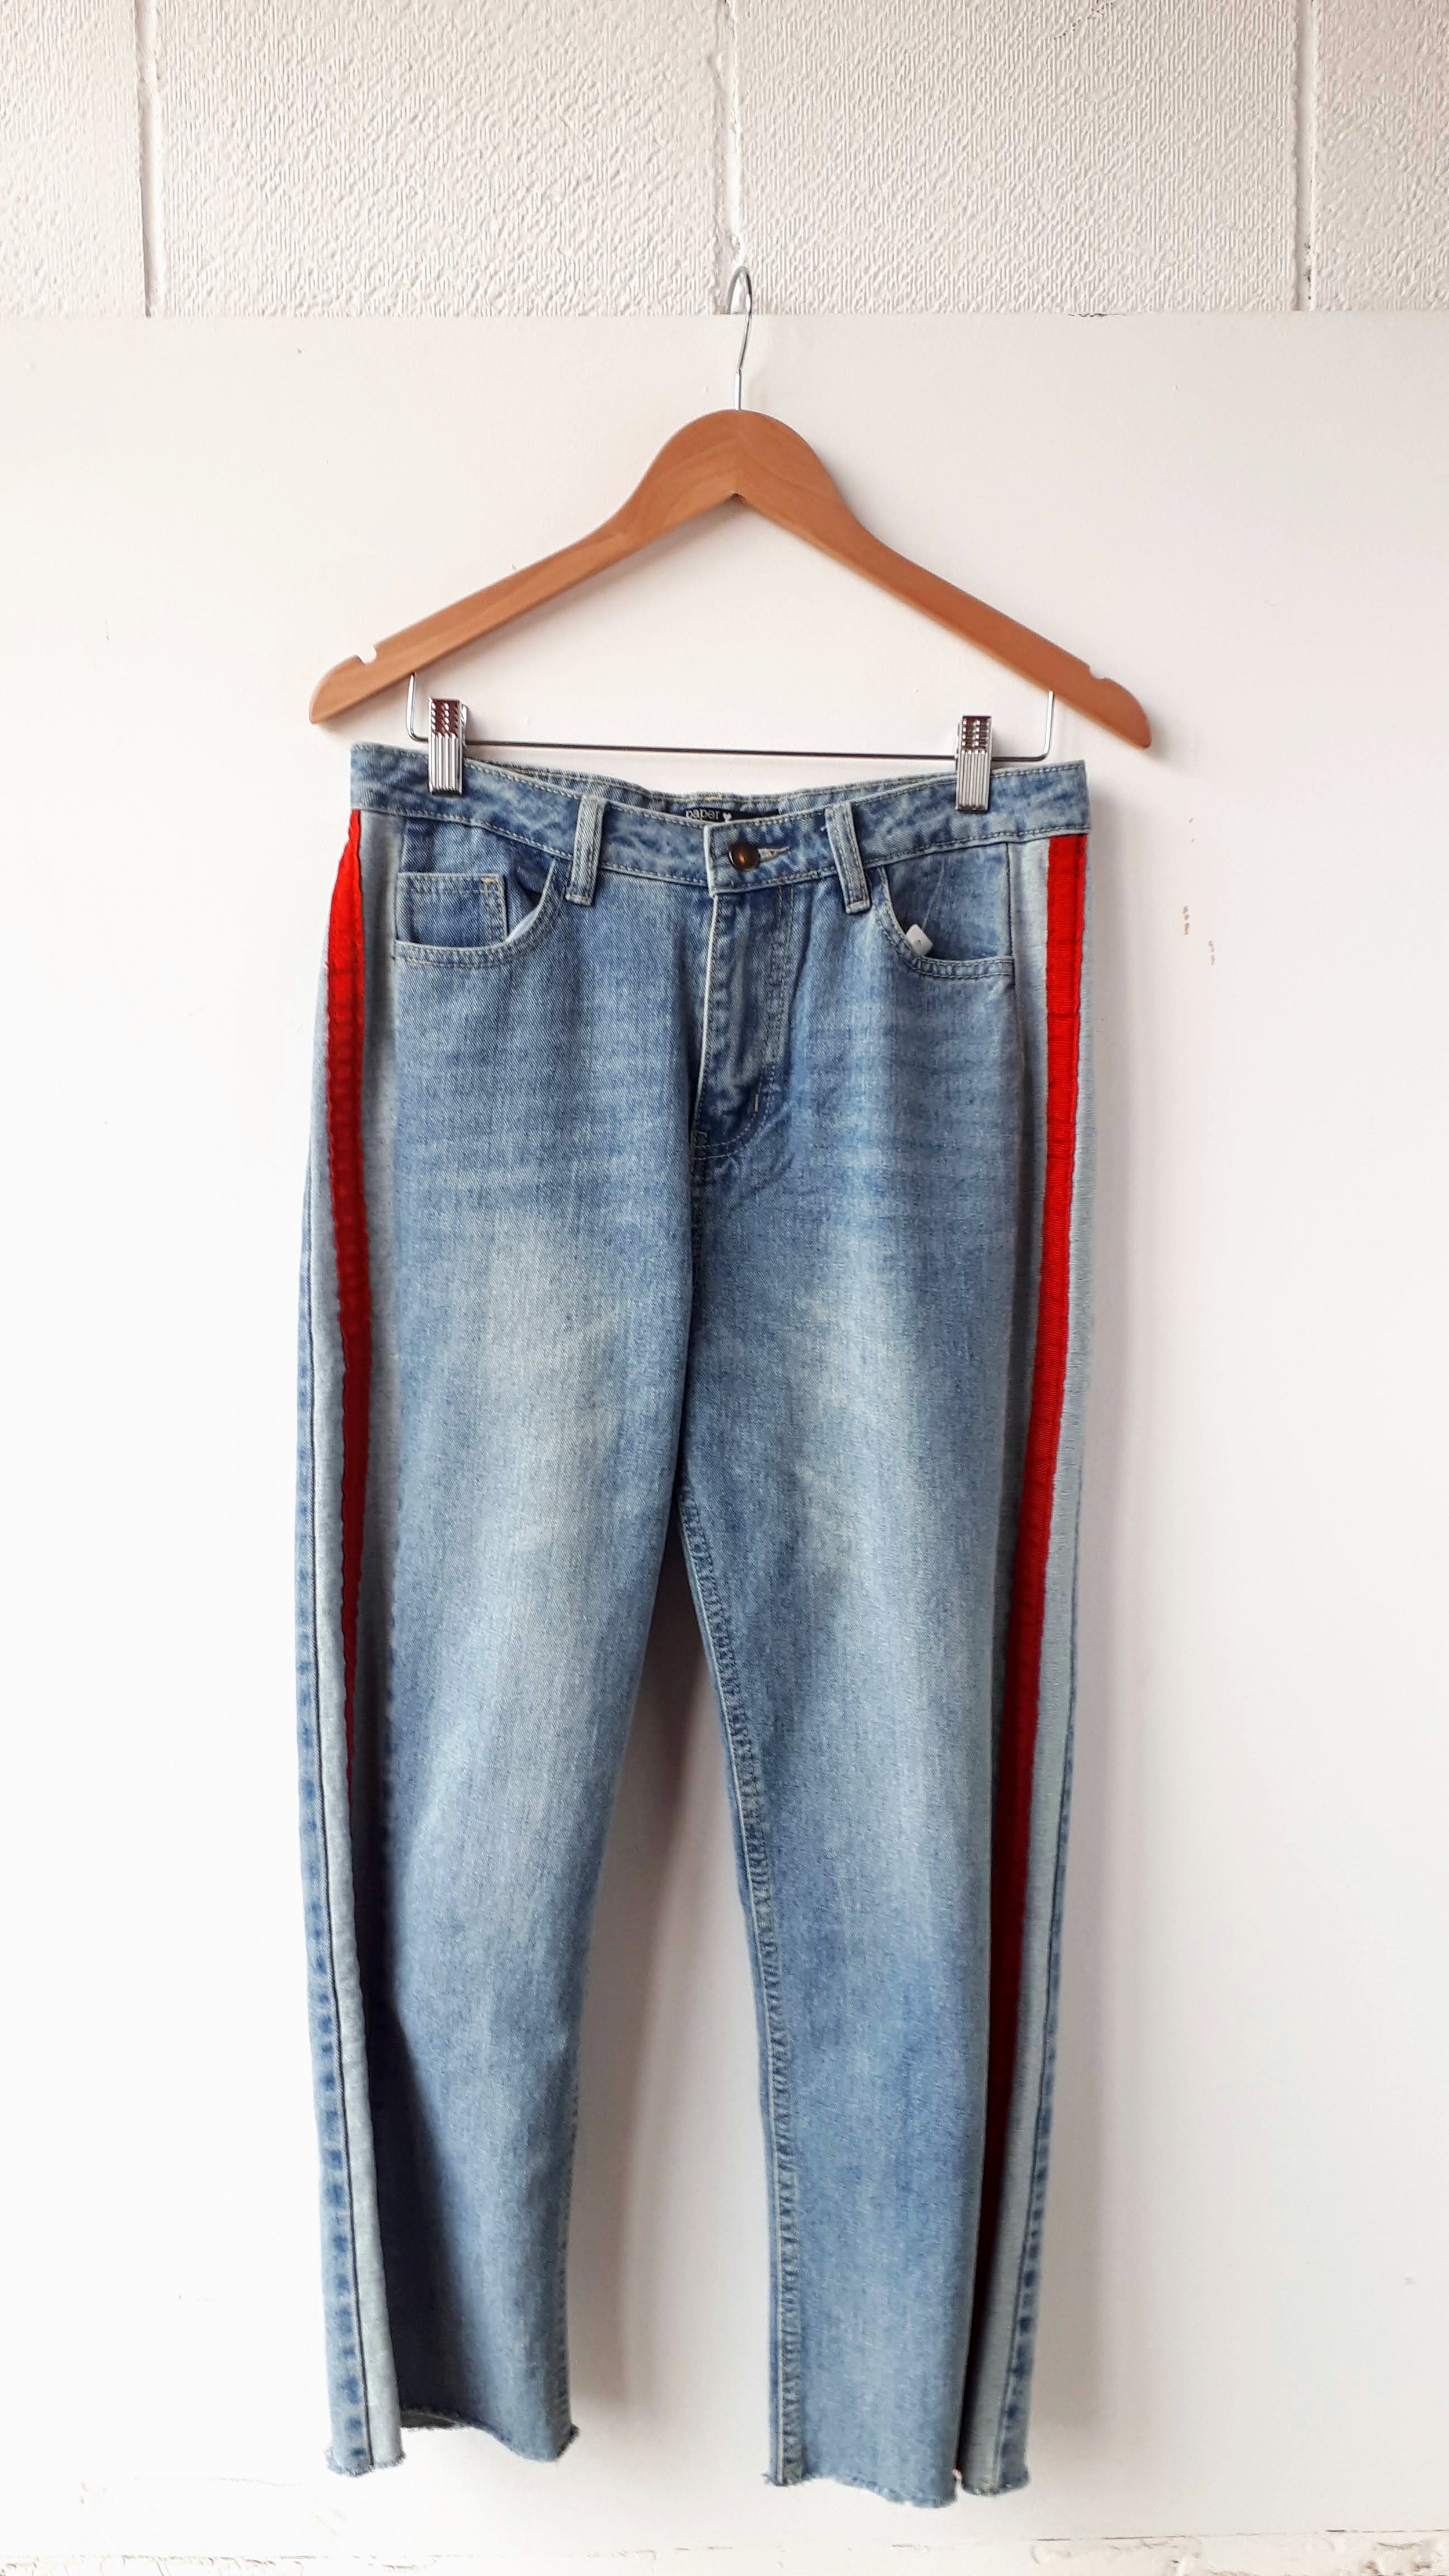 Paper Heart jeans; Size 30, $32